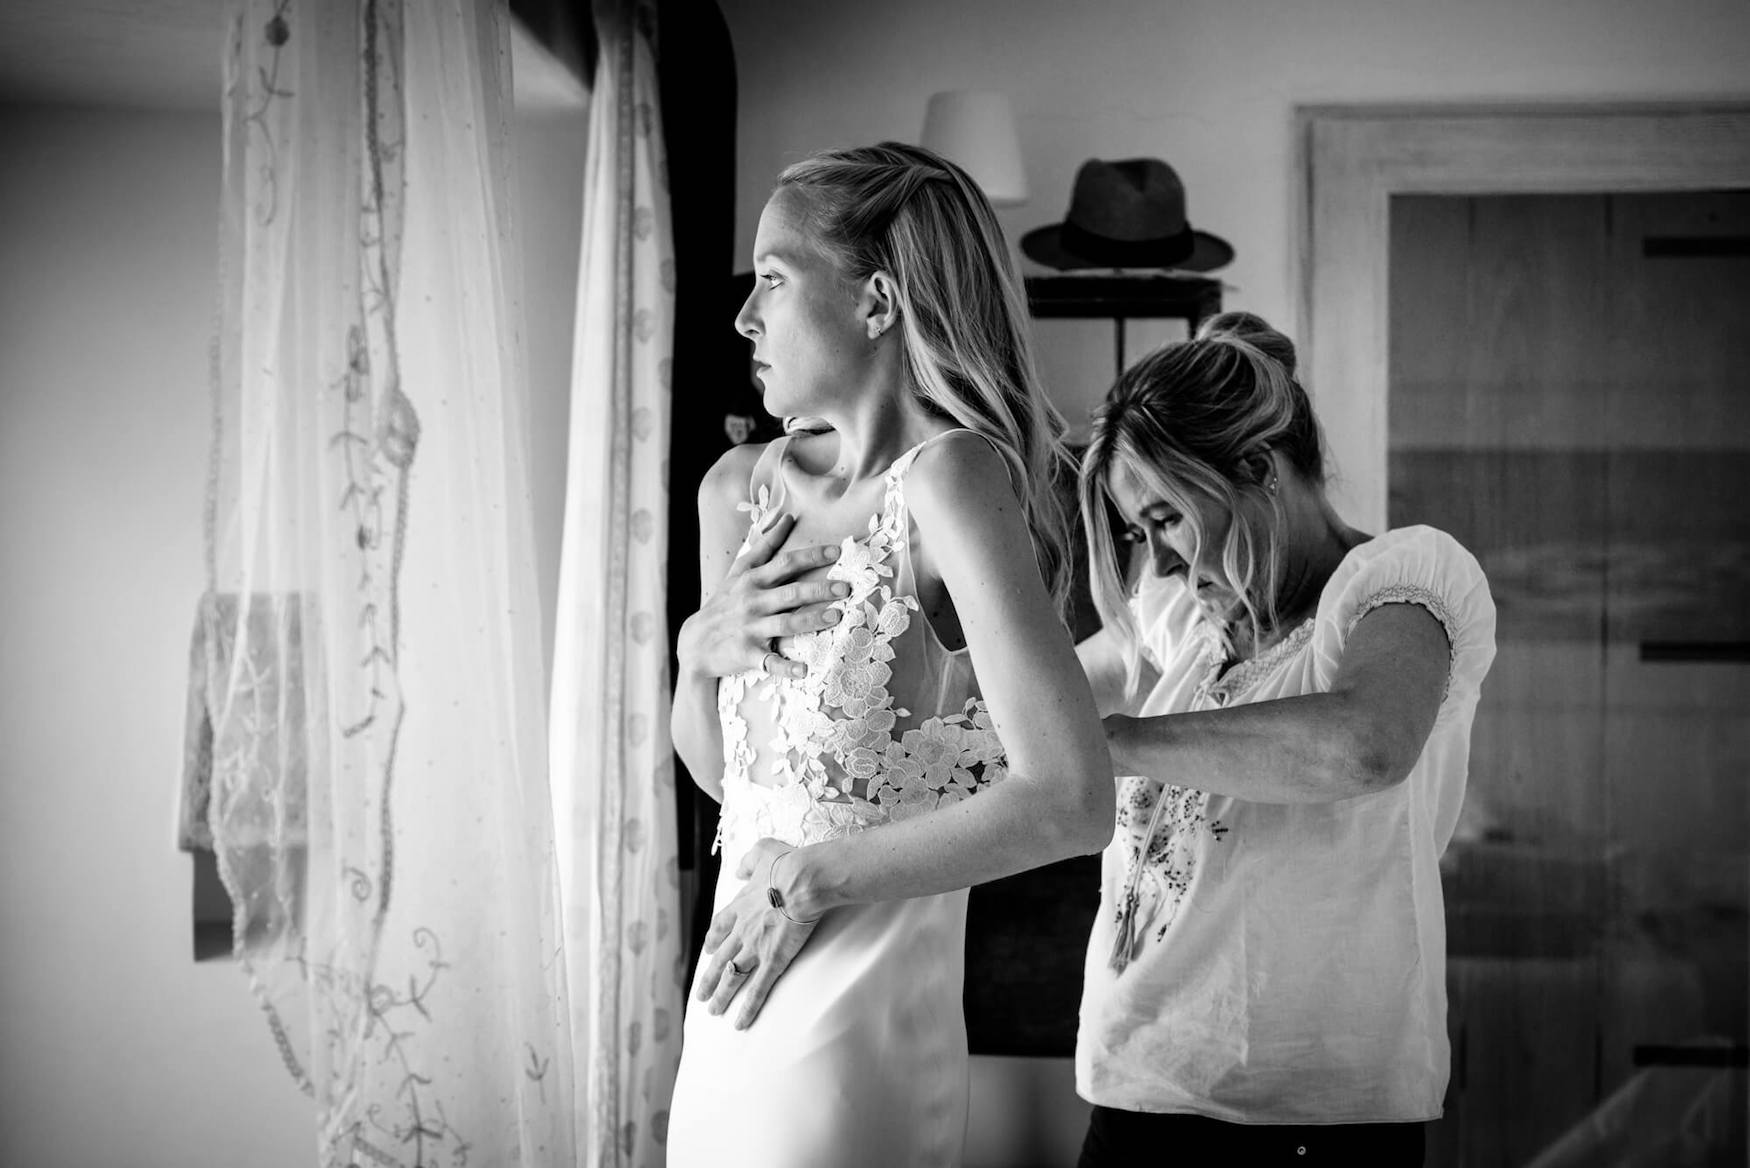 bride getting ready wedding dress mother of bride